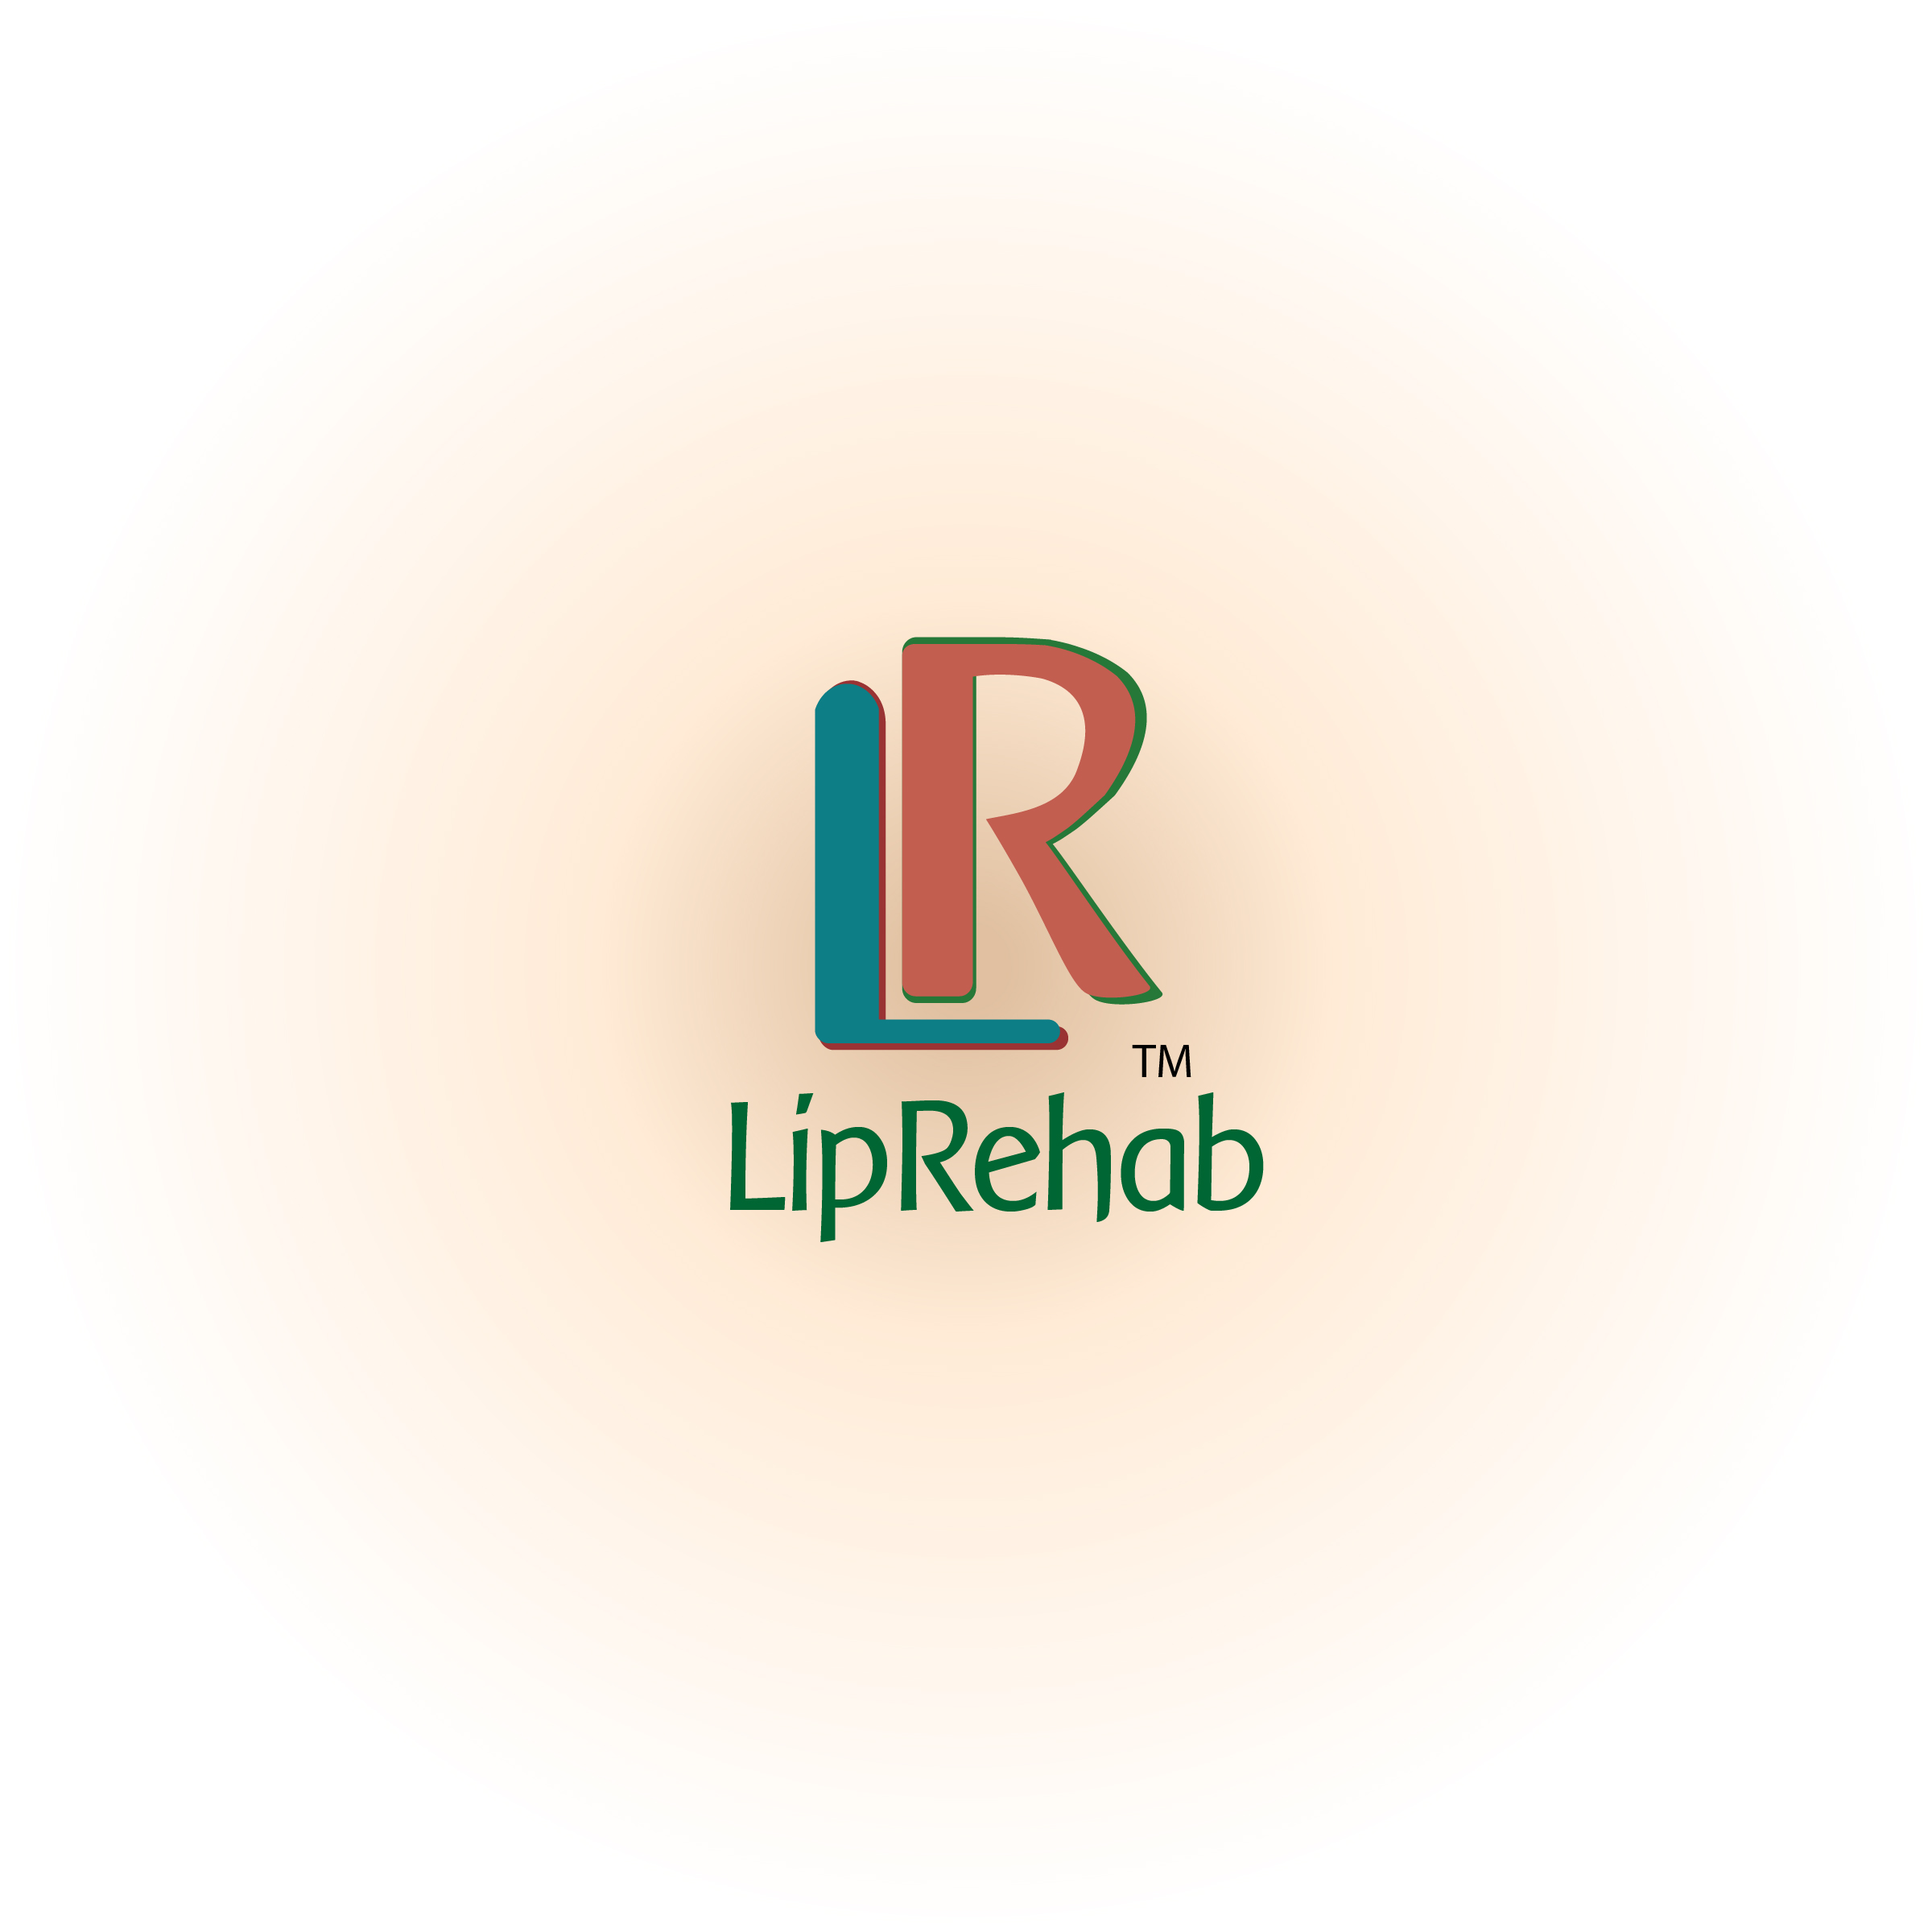 Logo Design by Nancy Grant - Entry No. 165 in the Logo Design Contest Creative Logo Design for Lip Rehab.